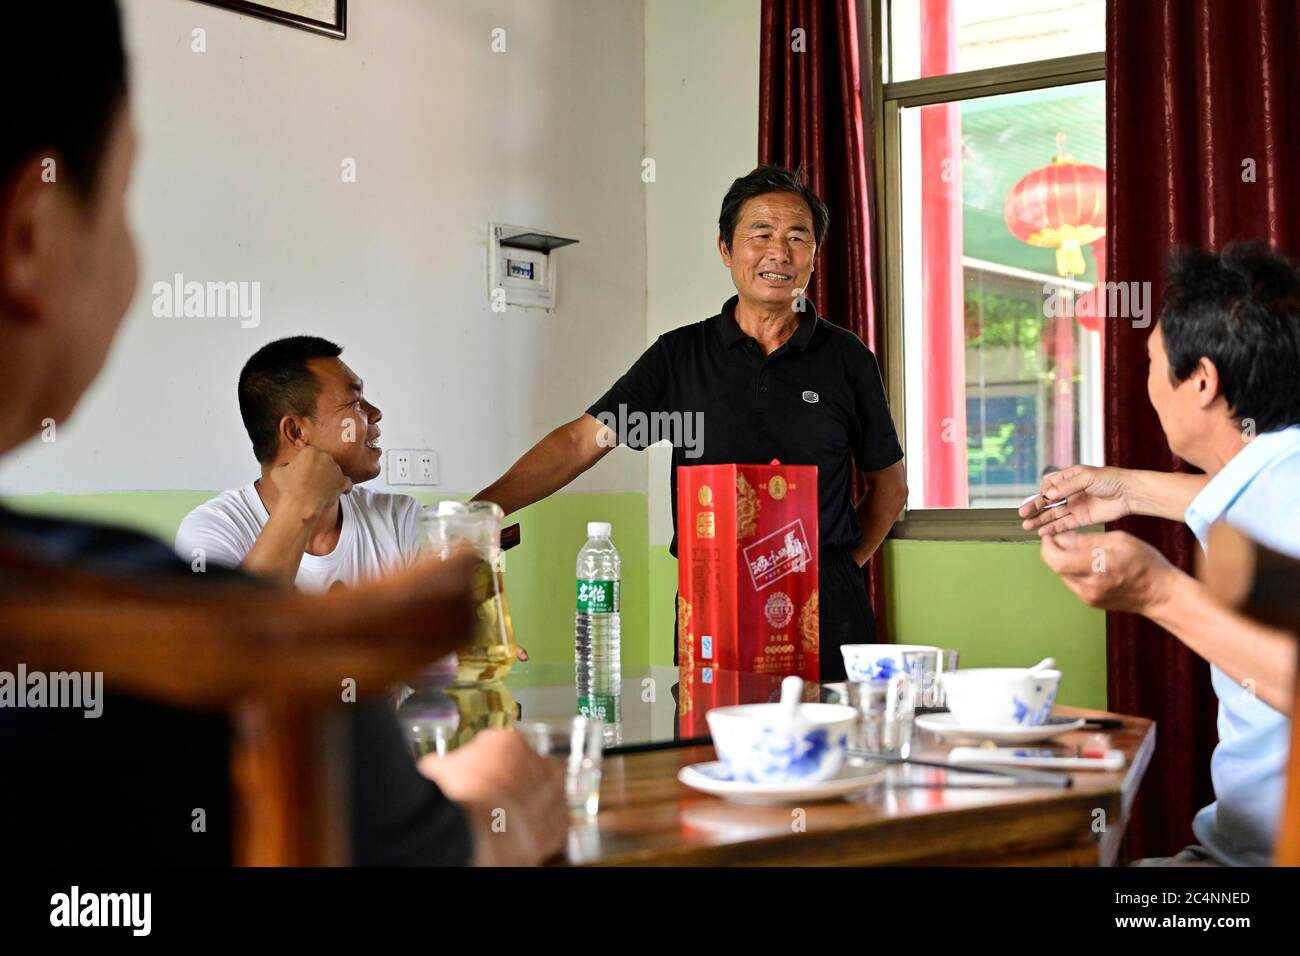 (200628) -- NANCHANG, June 28, 2020 (Xinhua) -- Zhu Yicai (C) talks to guests having a meal at his farmhouse in the Poyang Lake scenic area in Yugan County, east China's Jiangxi Province, June 16, 2020. Zhu Yicai gave up his fishing business in 2012 due to the worsening aquatic environment in the Poyang Lake. In 2018, Zhu was running a family farm when he noticed that lots of tourists came to the lake to watch migratory birds. Zhu then captured the business opportunity and opened a 1,800-square-meter farmhouse, which can accommodate more than 200 people dining at the same time. China began a 1 Stock Photo